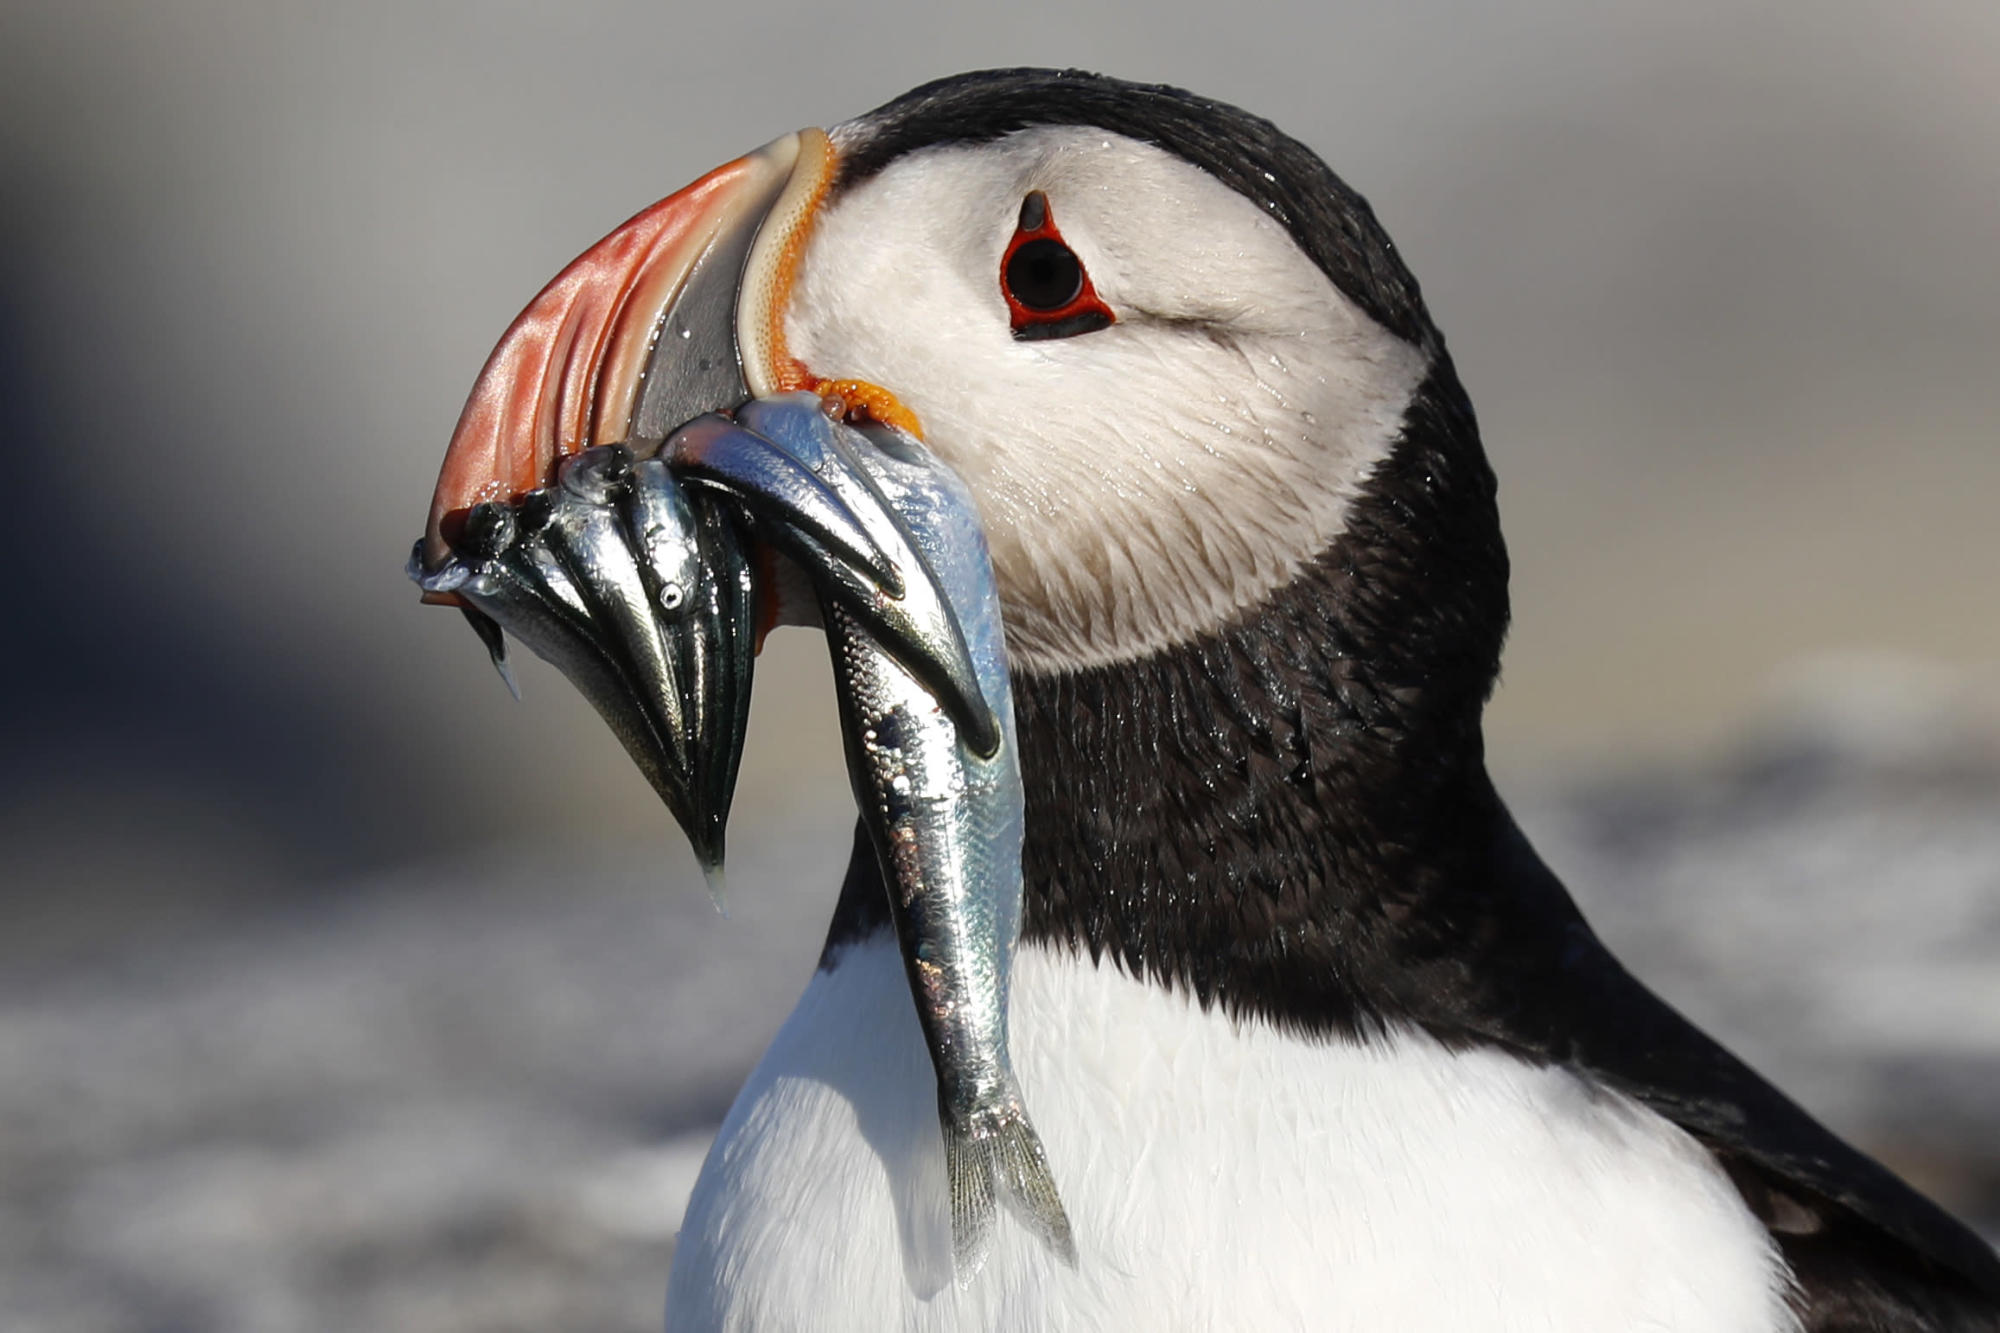 Puffin stuff: Herring rules could boost funny-looking bird